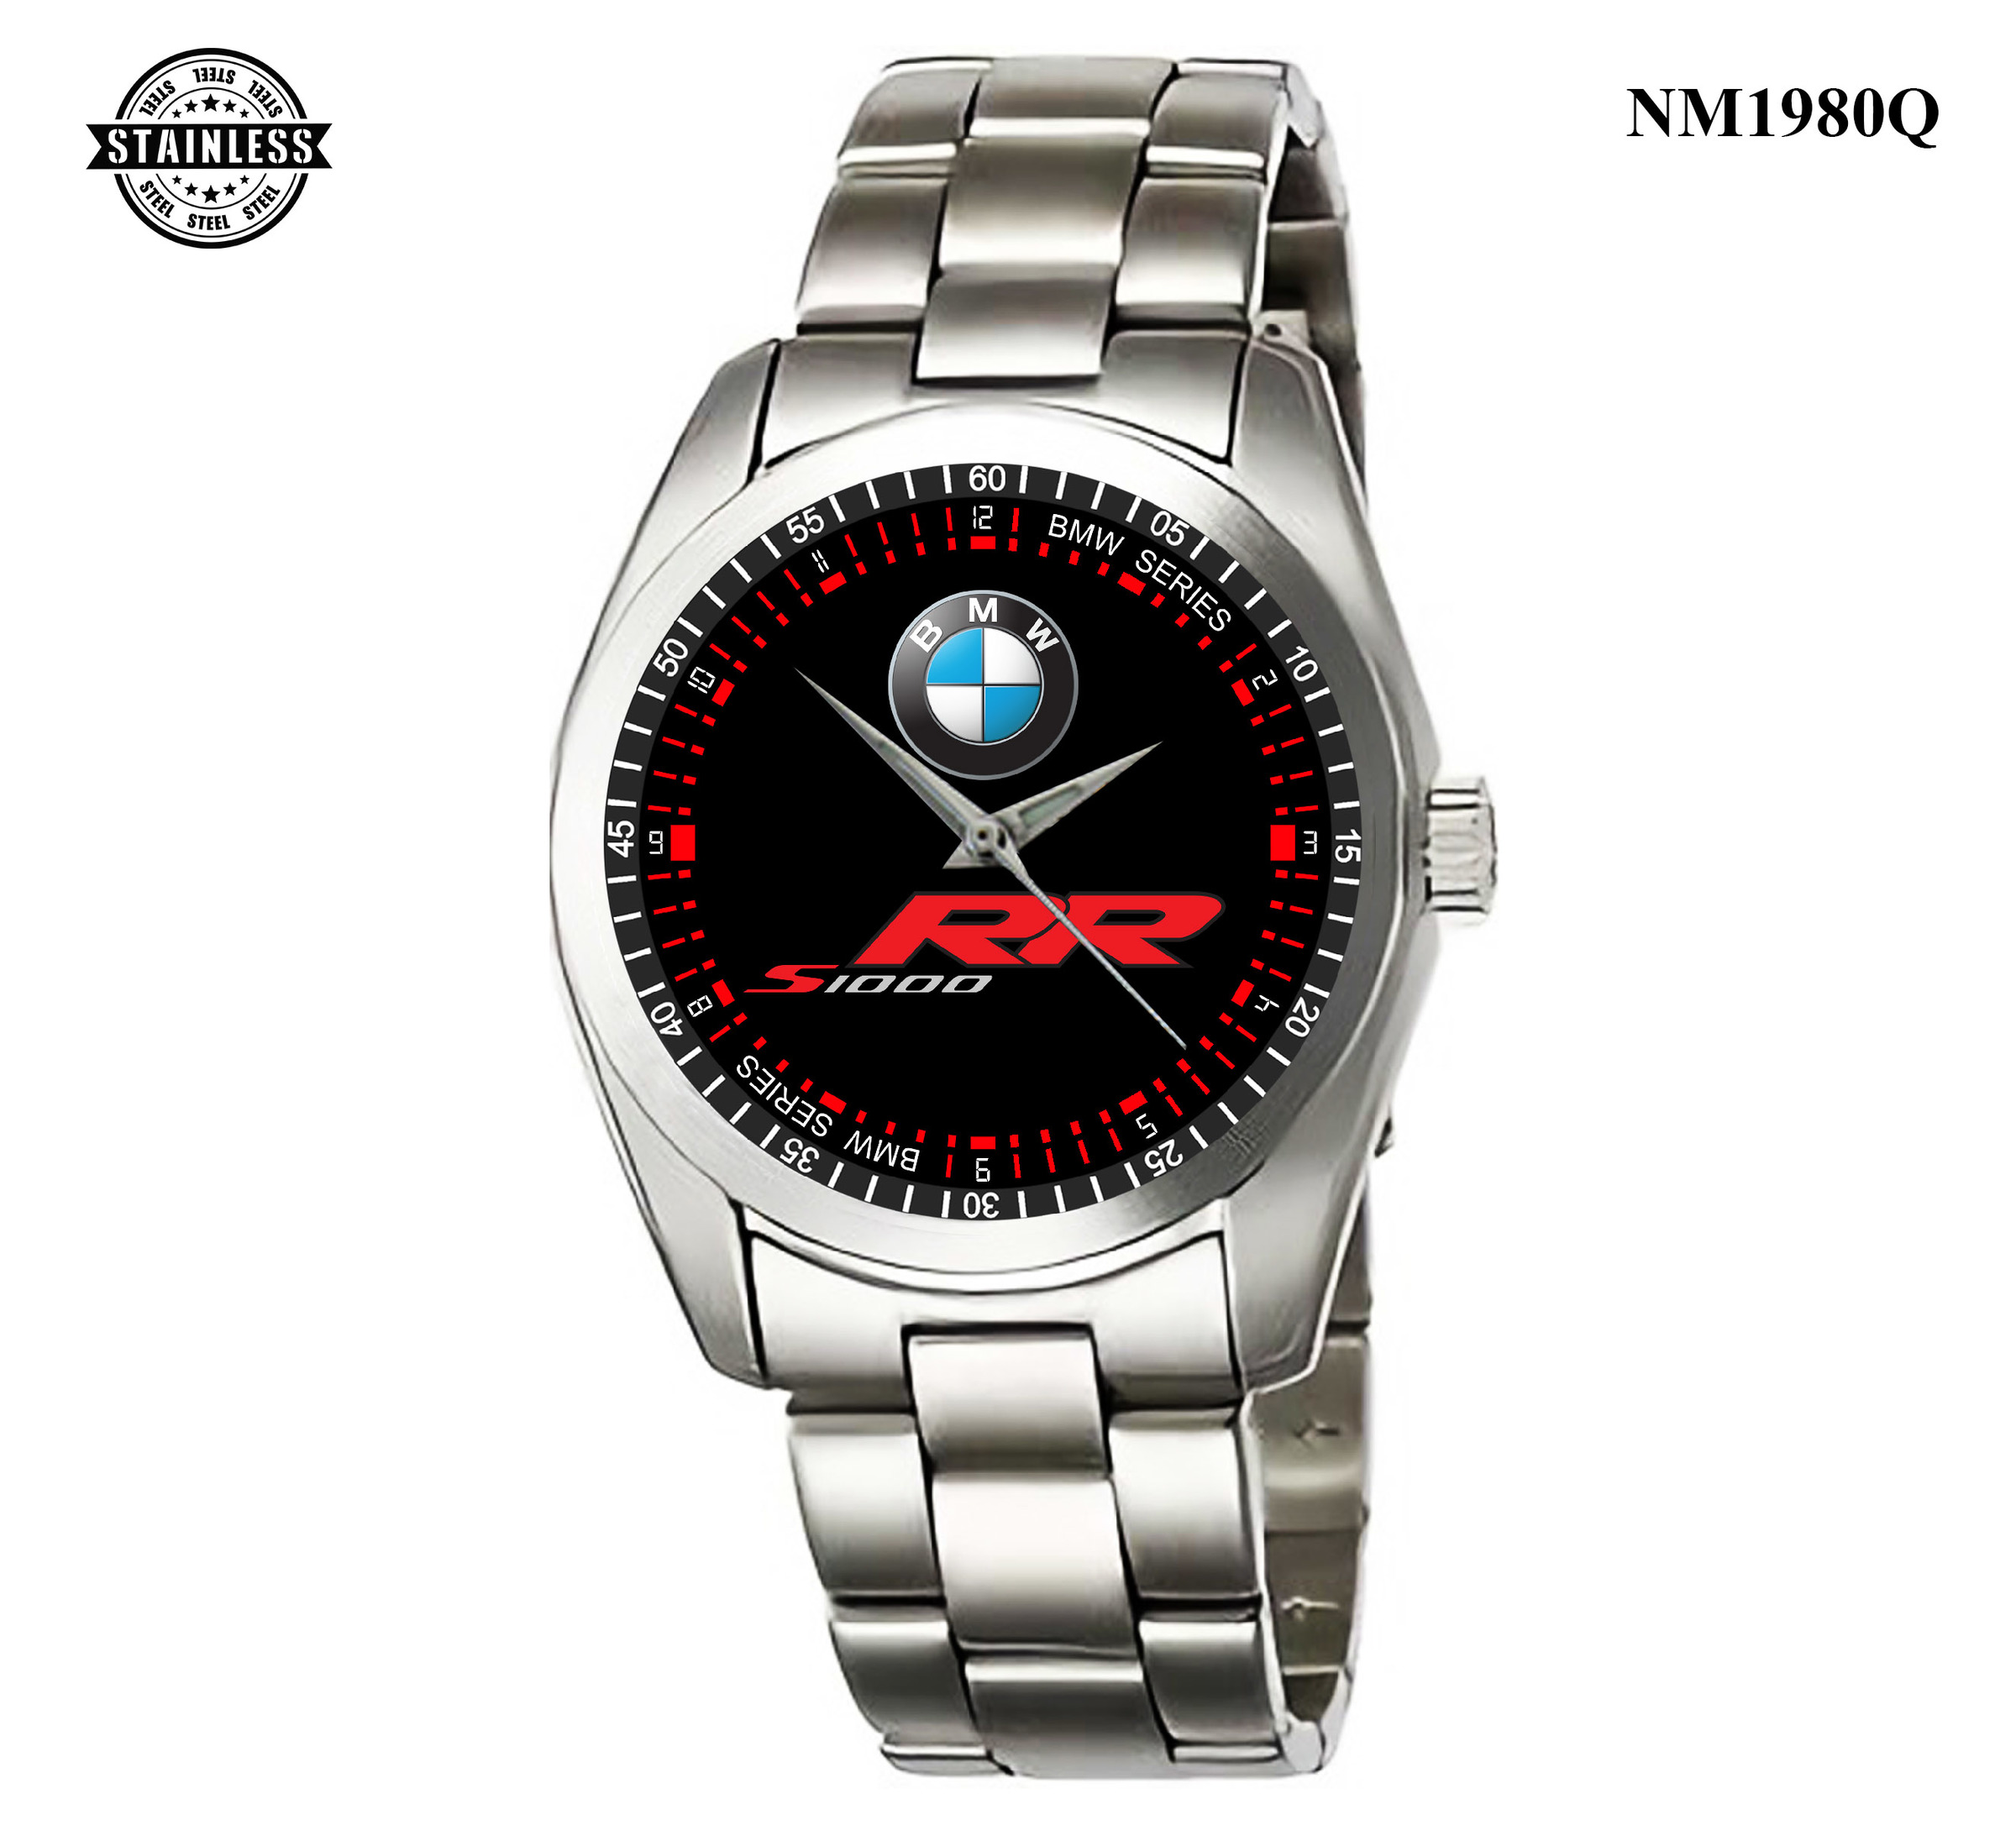 1.53 New Design Mens jewelery BMW S 1000 RR Sport Metal Watch.jpg